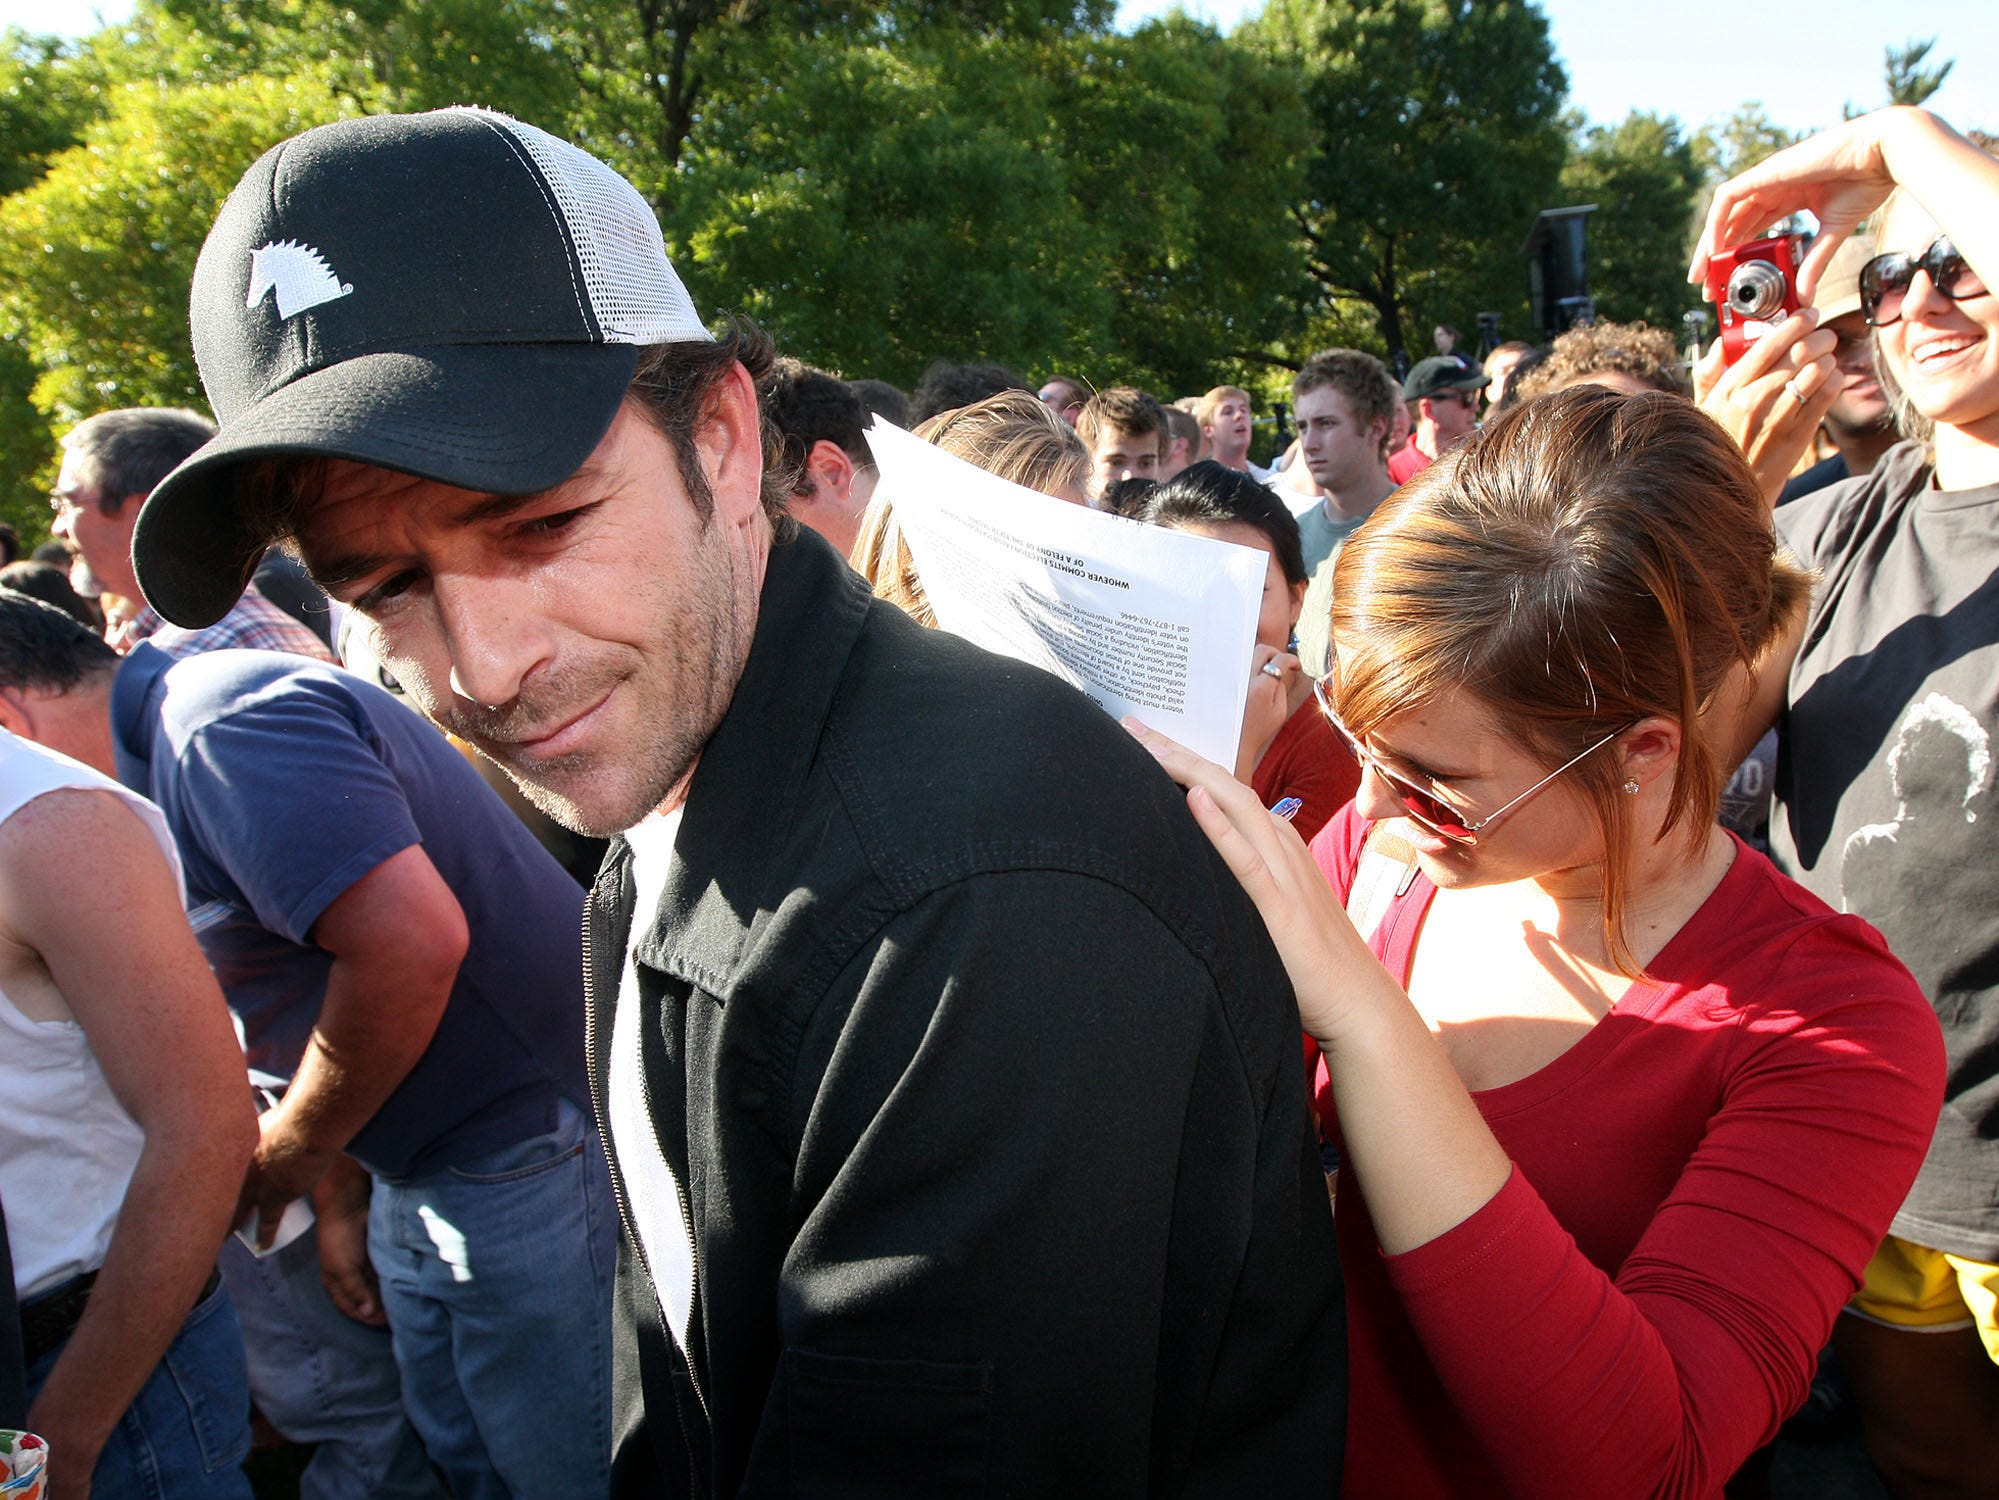 Brooke Short, right, fills out the voter registration form on the back of actor Luke Perry, left, before a Bruce Springsteen concert Sunday, Oct. 5, 2008, on the campus of Ohio State University, in Columbus, Ohio. Perry was encouraging Barack Obama supporters to register and take advantage of Ohio's early voting period.